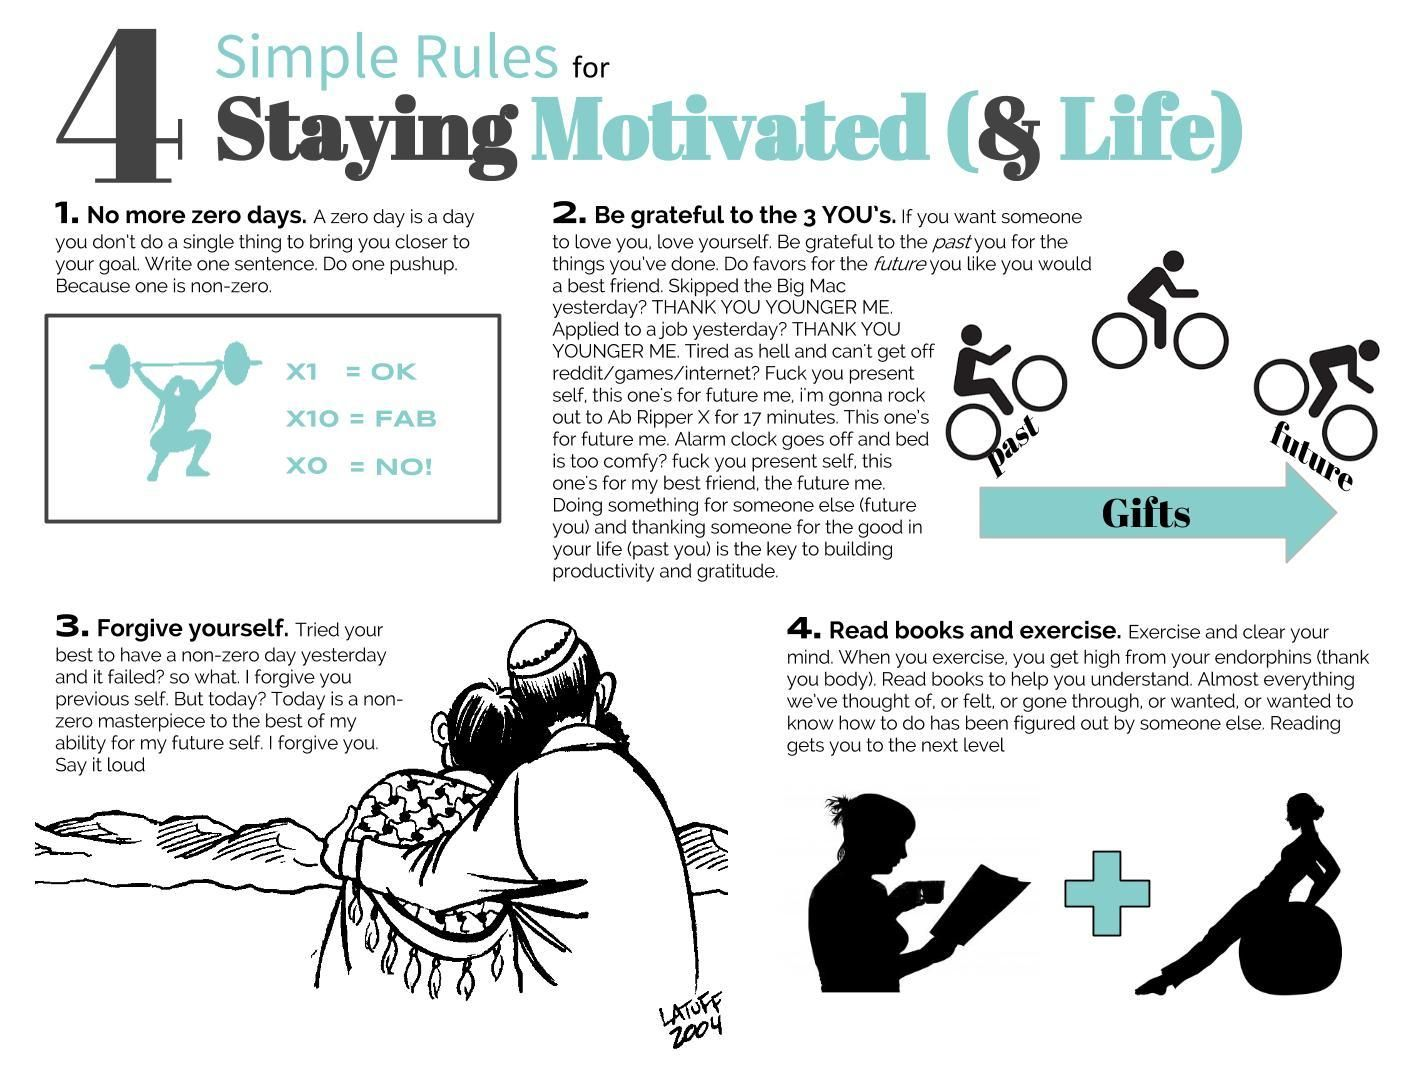 Non Zero Days | School: WISE | How to stay motivated, Life rules